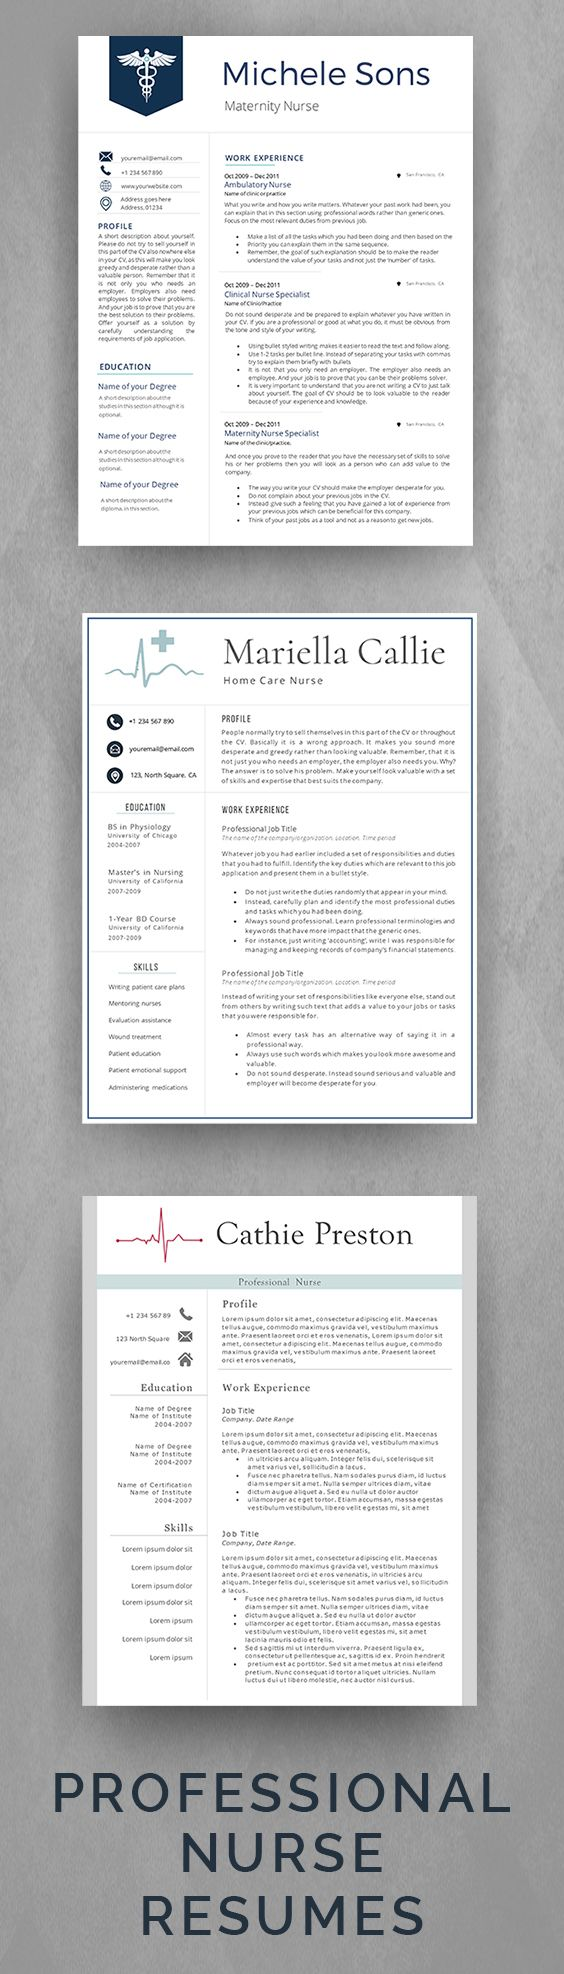 Professional Nurse Resume Templates for Medical Professionals. Elegant and Easy to Edit Nurse CV Templates. Includes 2 Page CV Template + Matching Cover Letter + Matching Additional References Page. Nurse Resumes by AvataDesigns.